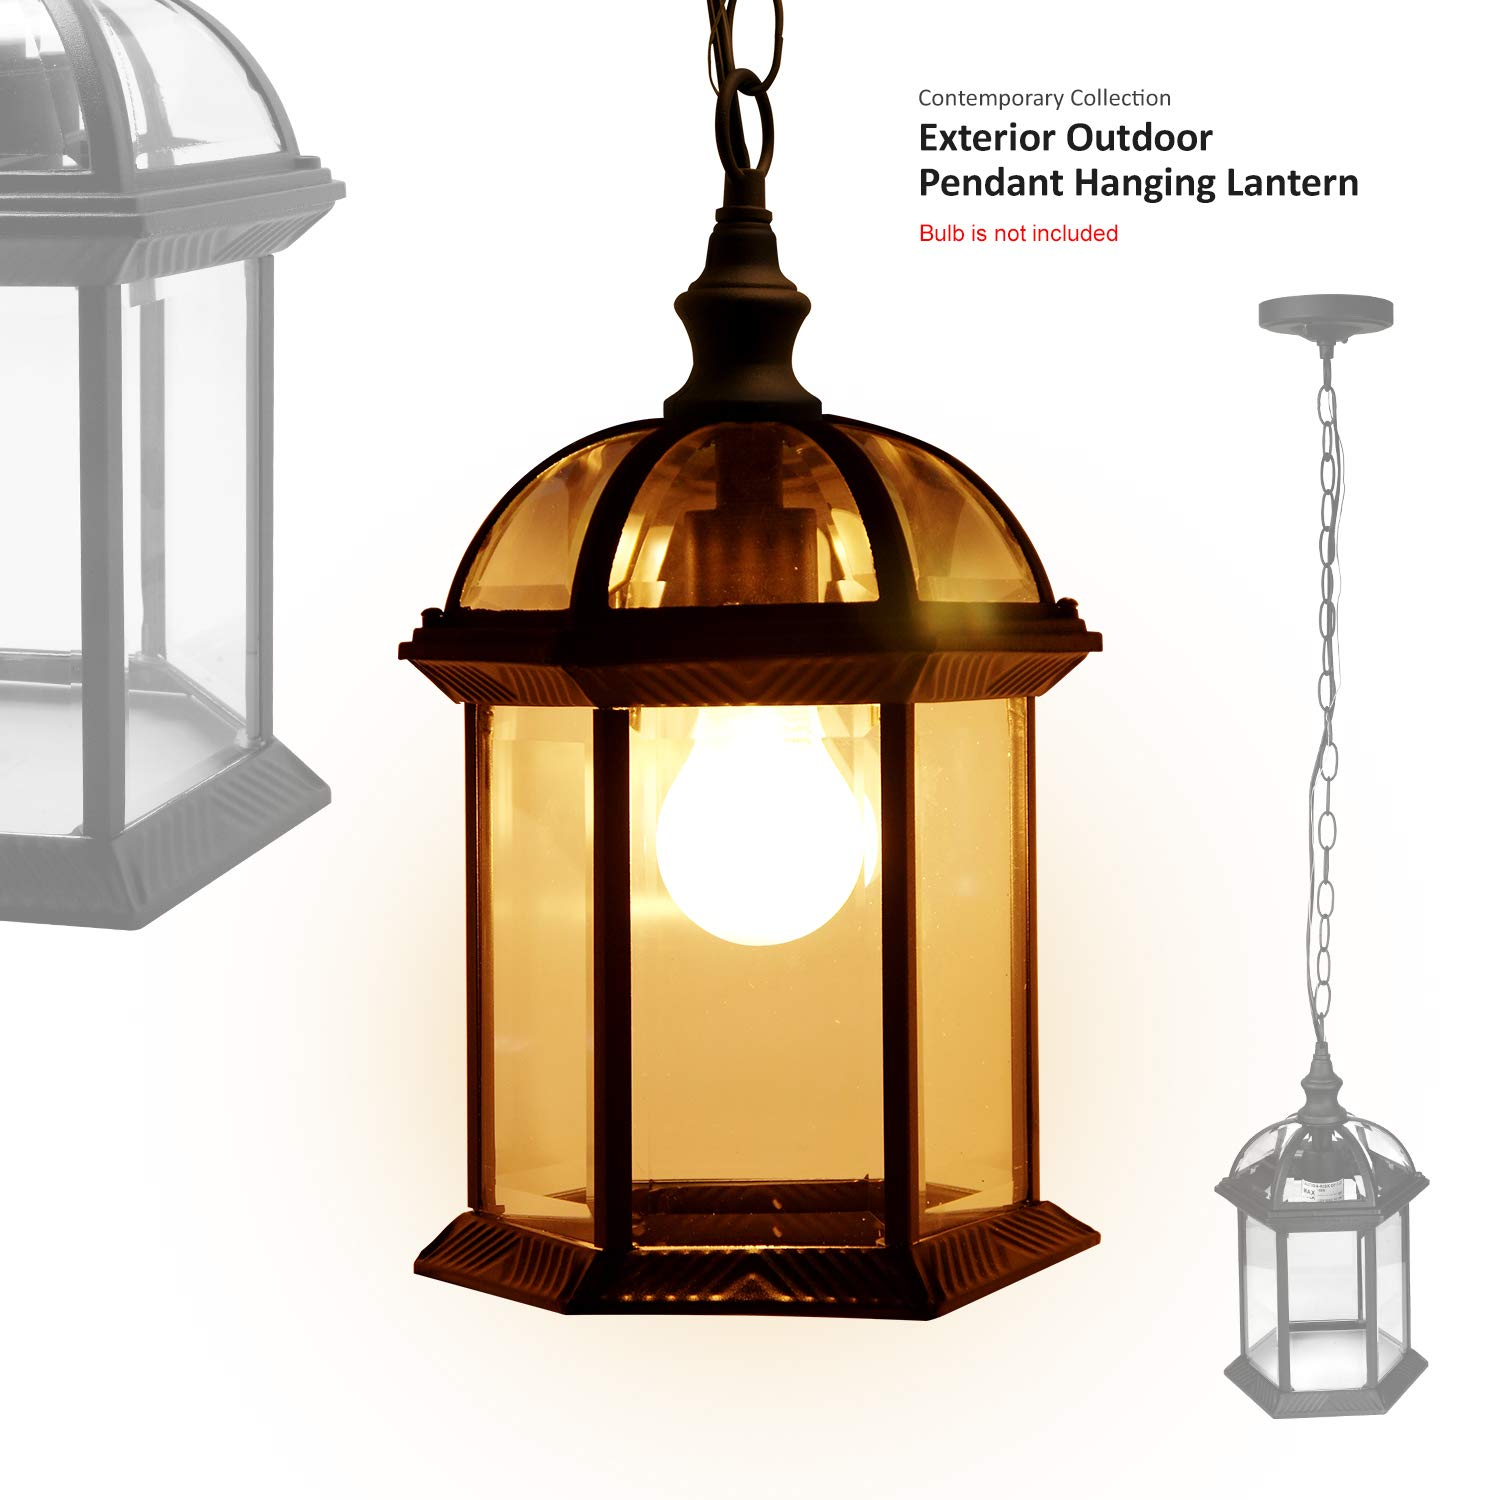 eTopLighting Contemporary Collection Exterior Outdoor Pendant Hanging Lantern with Beveled Clear Glass APL1023